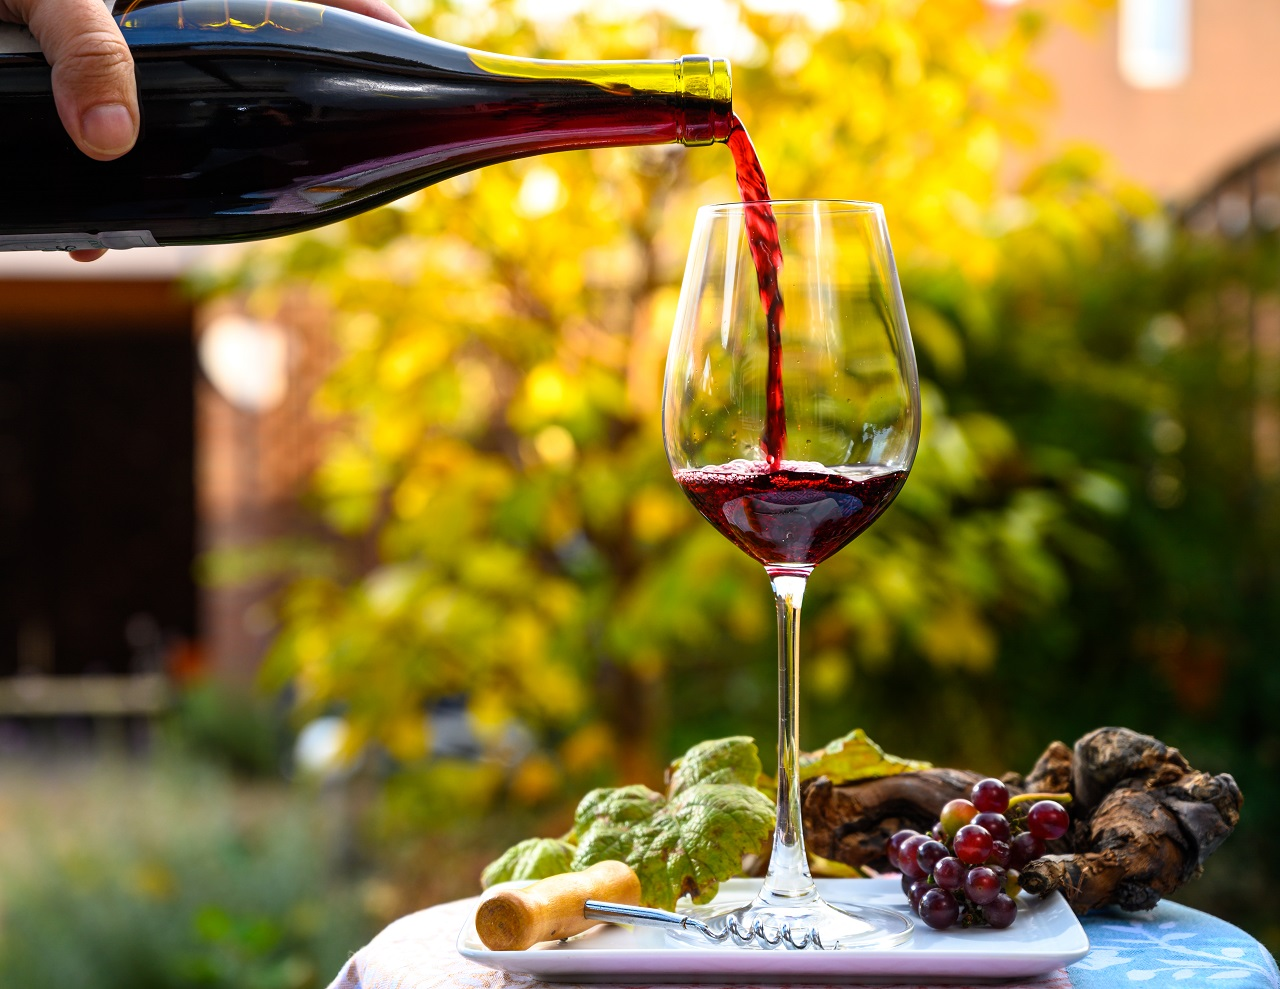 Pouring-yound-red-beaujolais-wine-in-glass-during-celebration-of-end-of-harvest-and-first-sale-release-on-third-Thursday-of-November-in-sunny-day-in-Burgundy-France